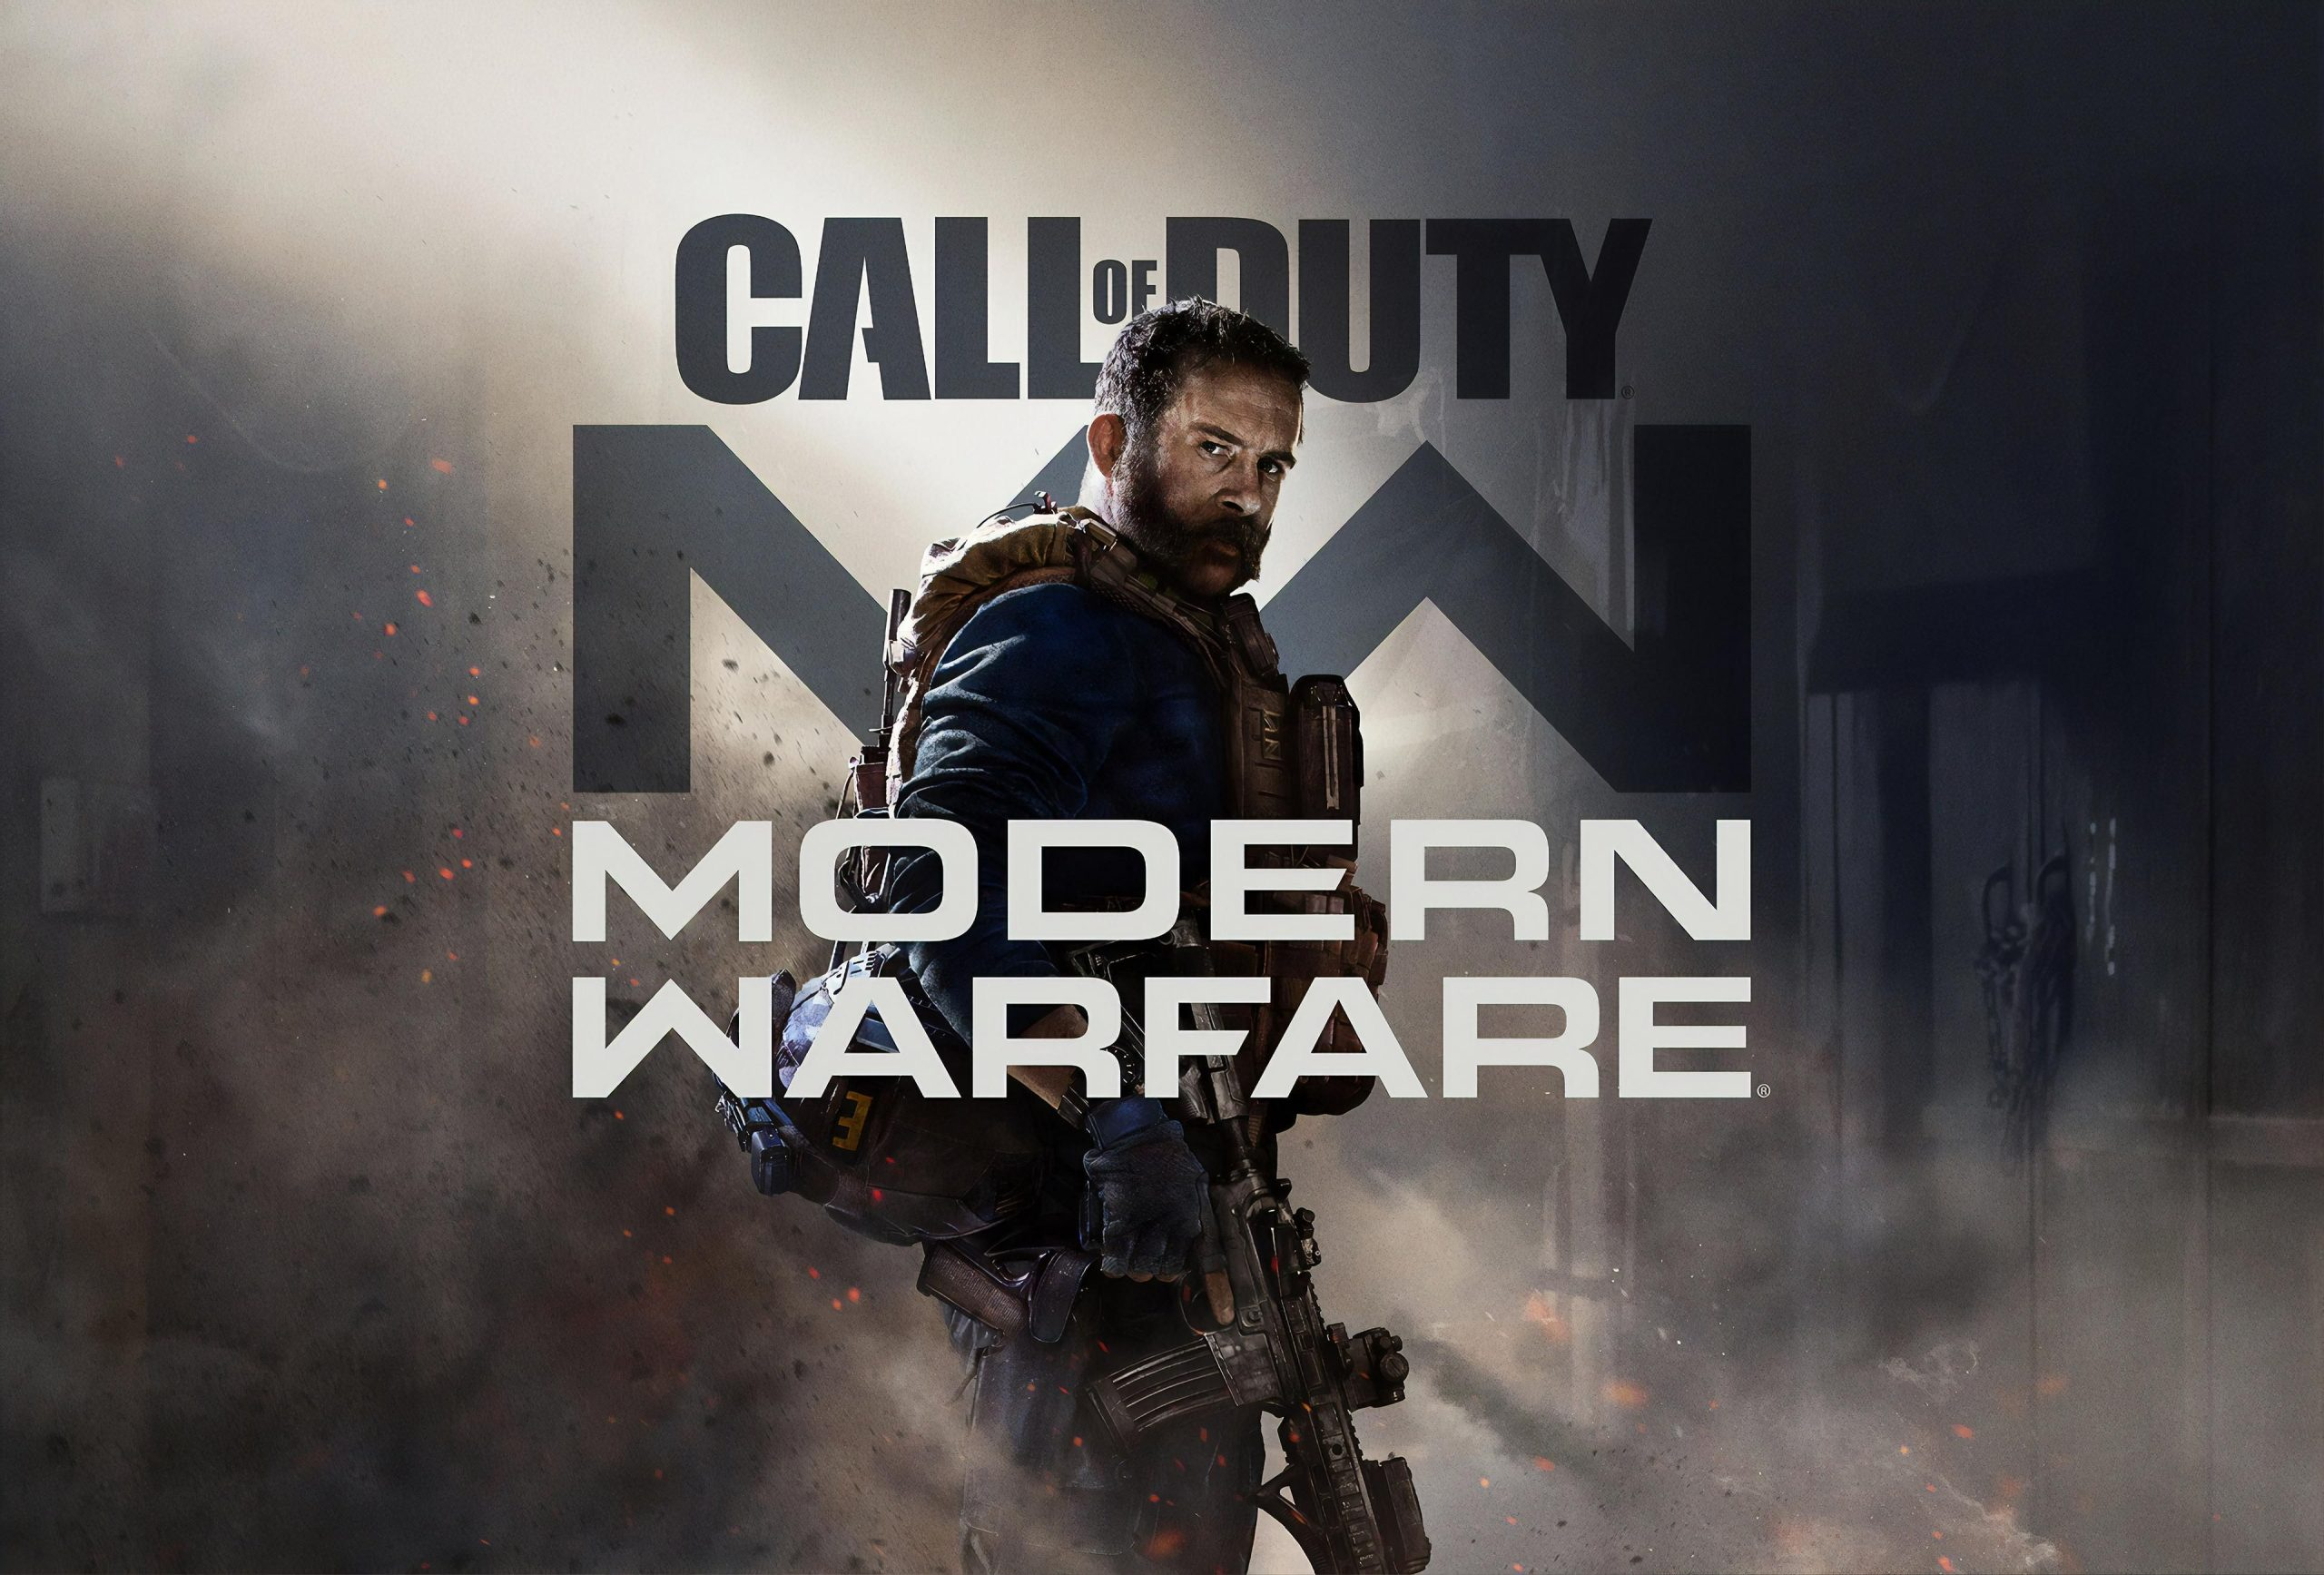 Call of Duty: Modern Warwafe